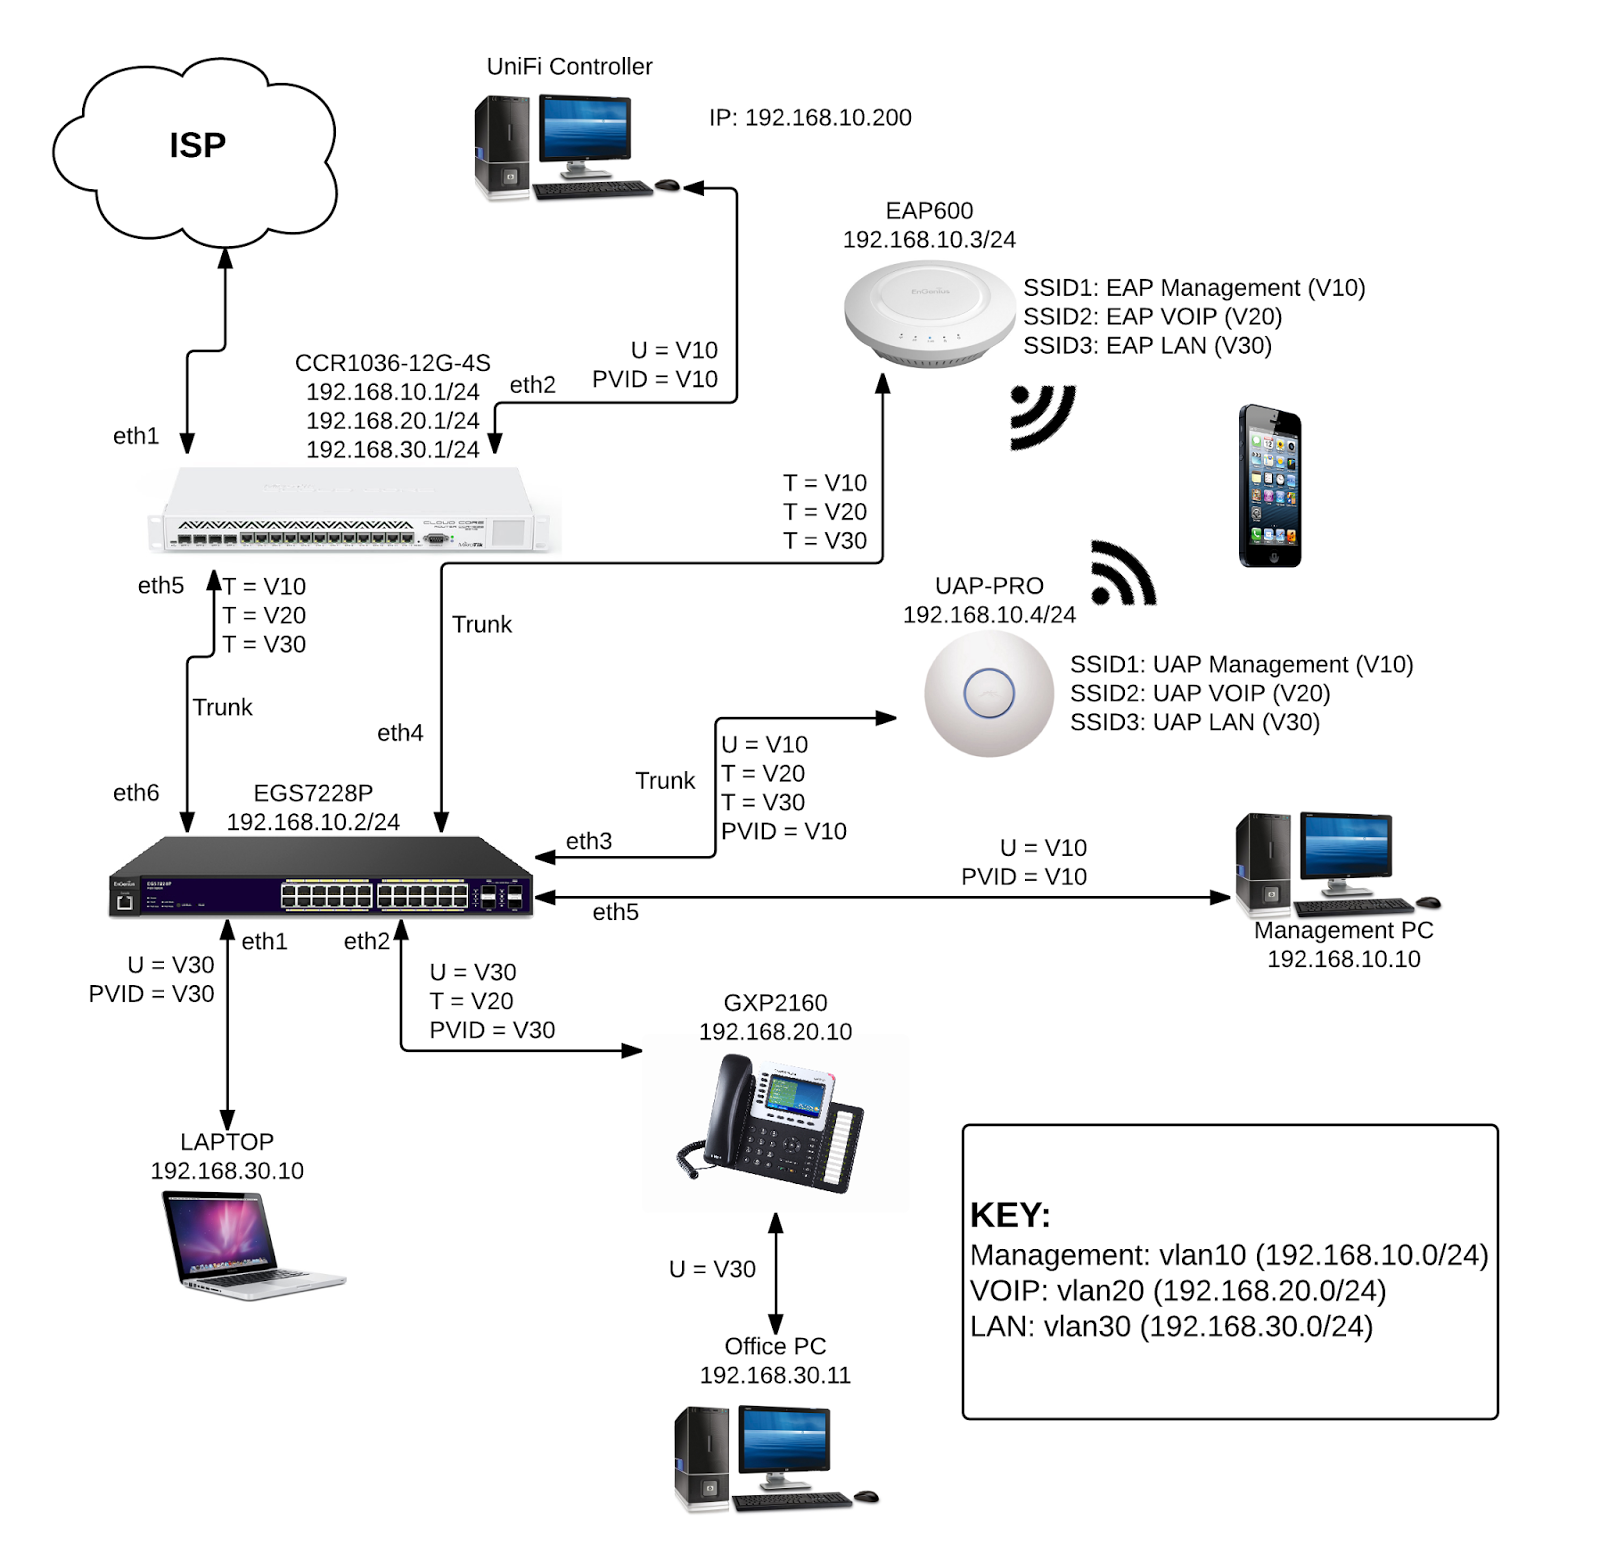 small resolution of create 3 bridges management voip lan 2 create 3 vlans ether5 10 ether5 20 ether5 30 under ether5 interface 3 setup each bridge with its own ip